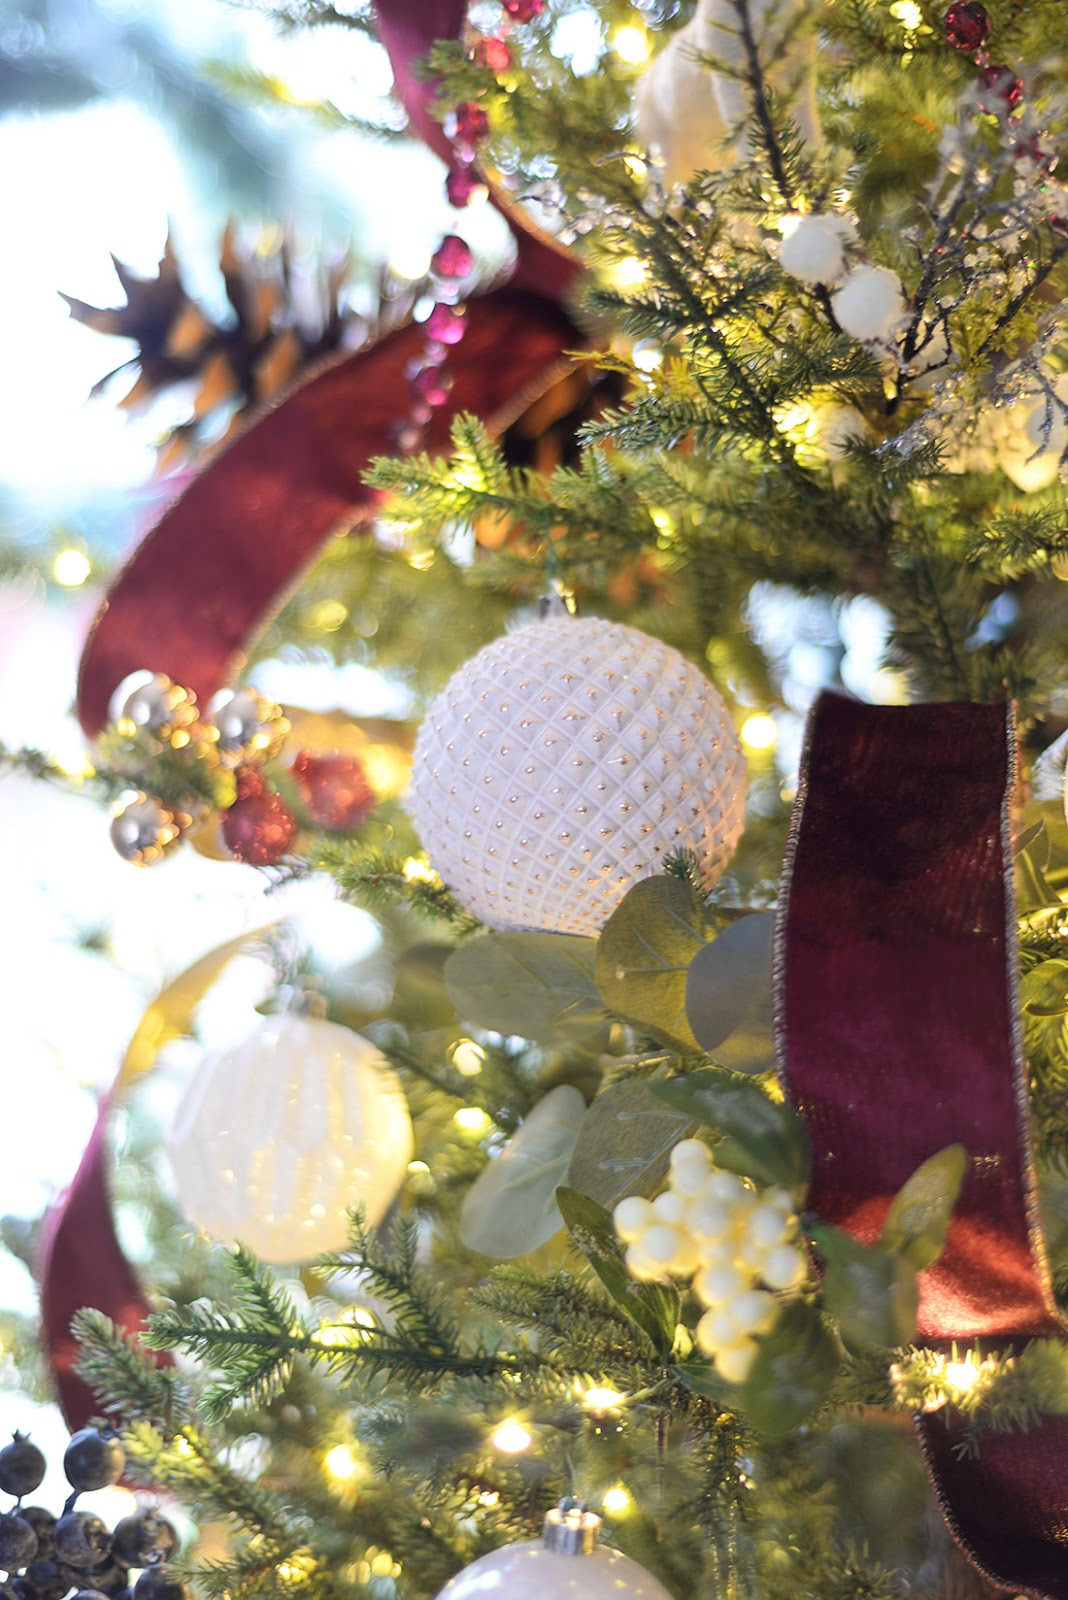 Living room decorated for Christmas with red and white Christmas tree. Canadian Tire mulberry collection Christmas ornaments. Rose gold christmas decorations